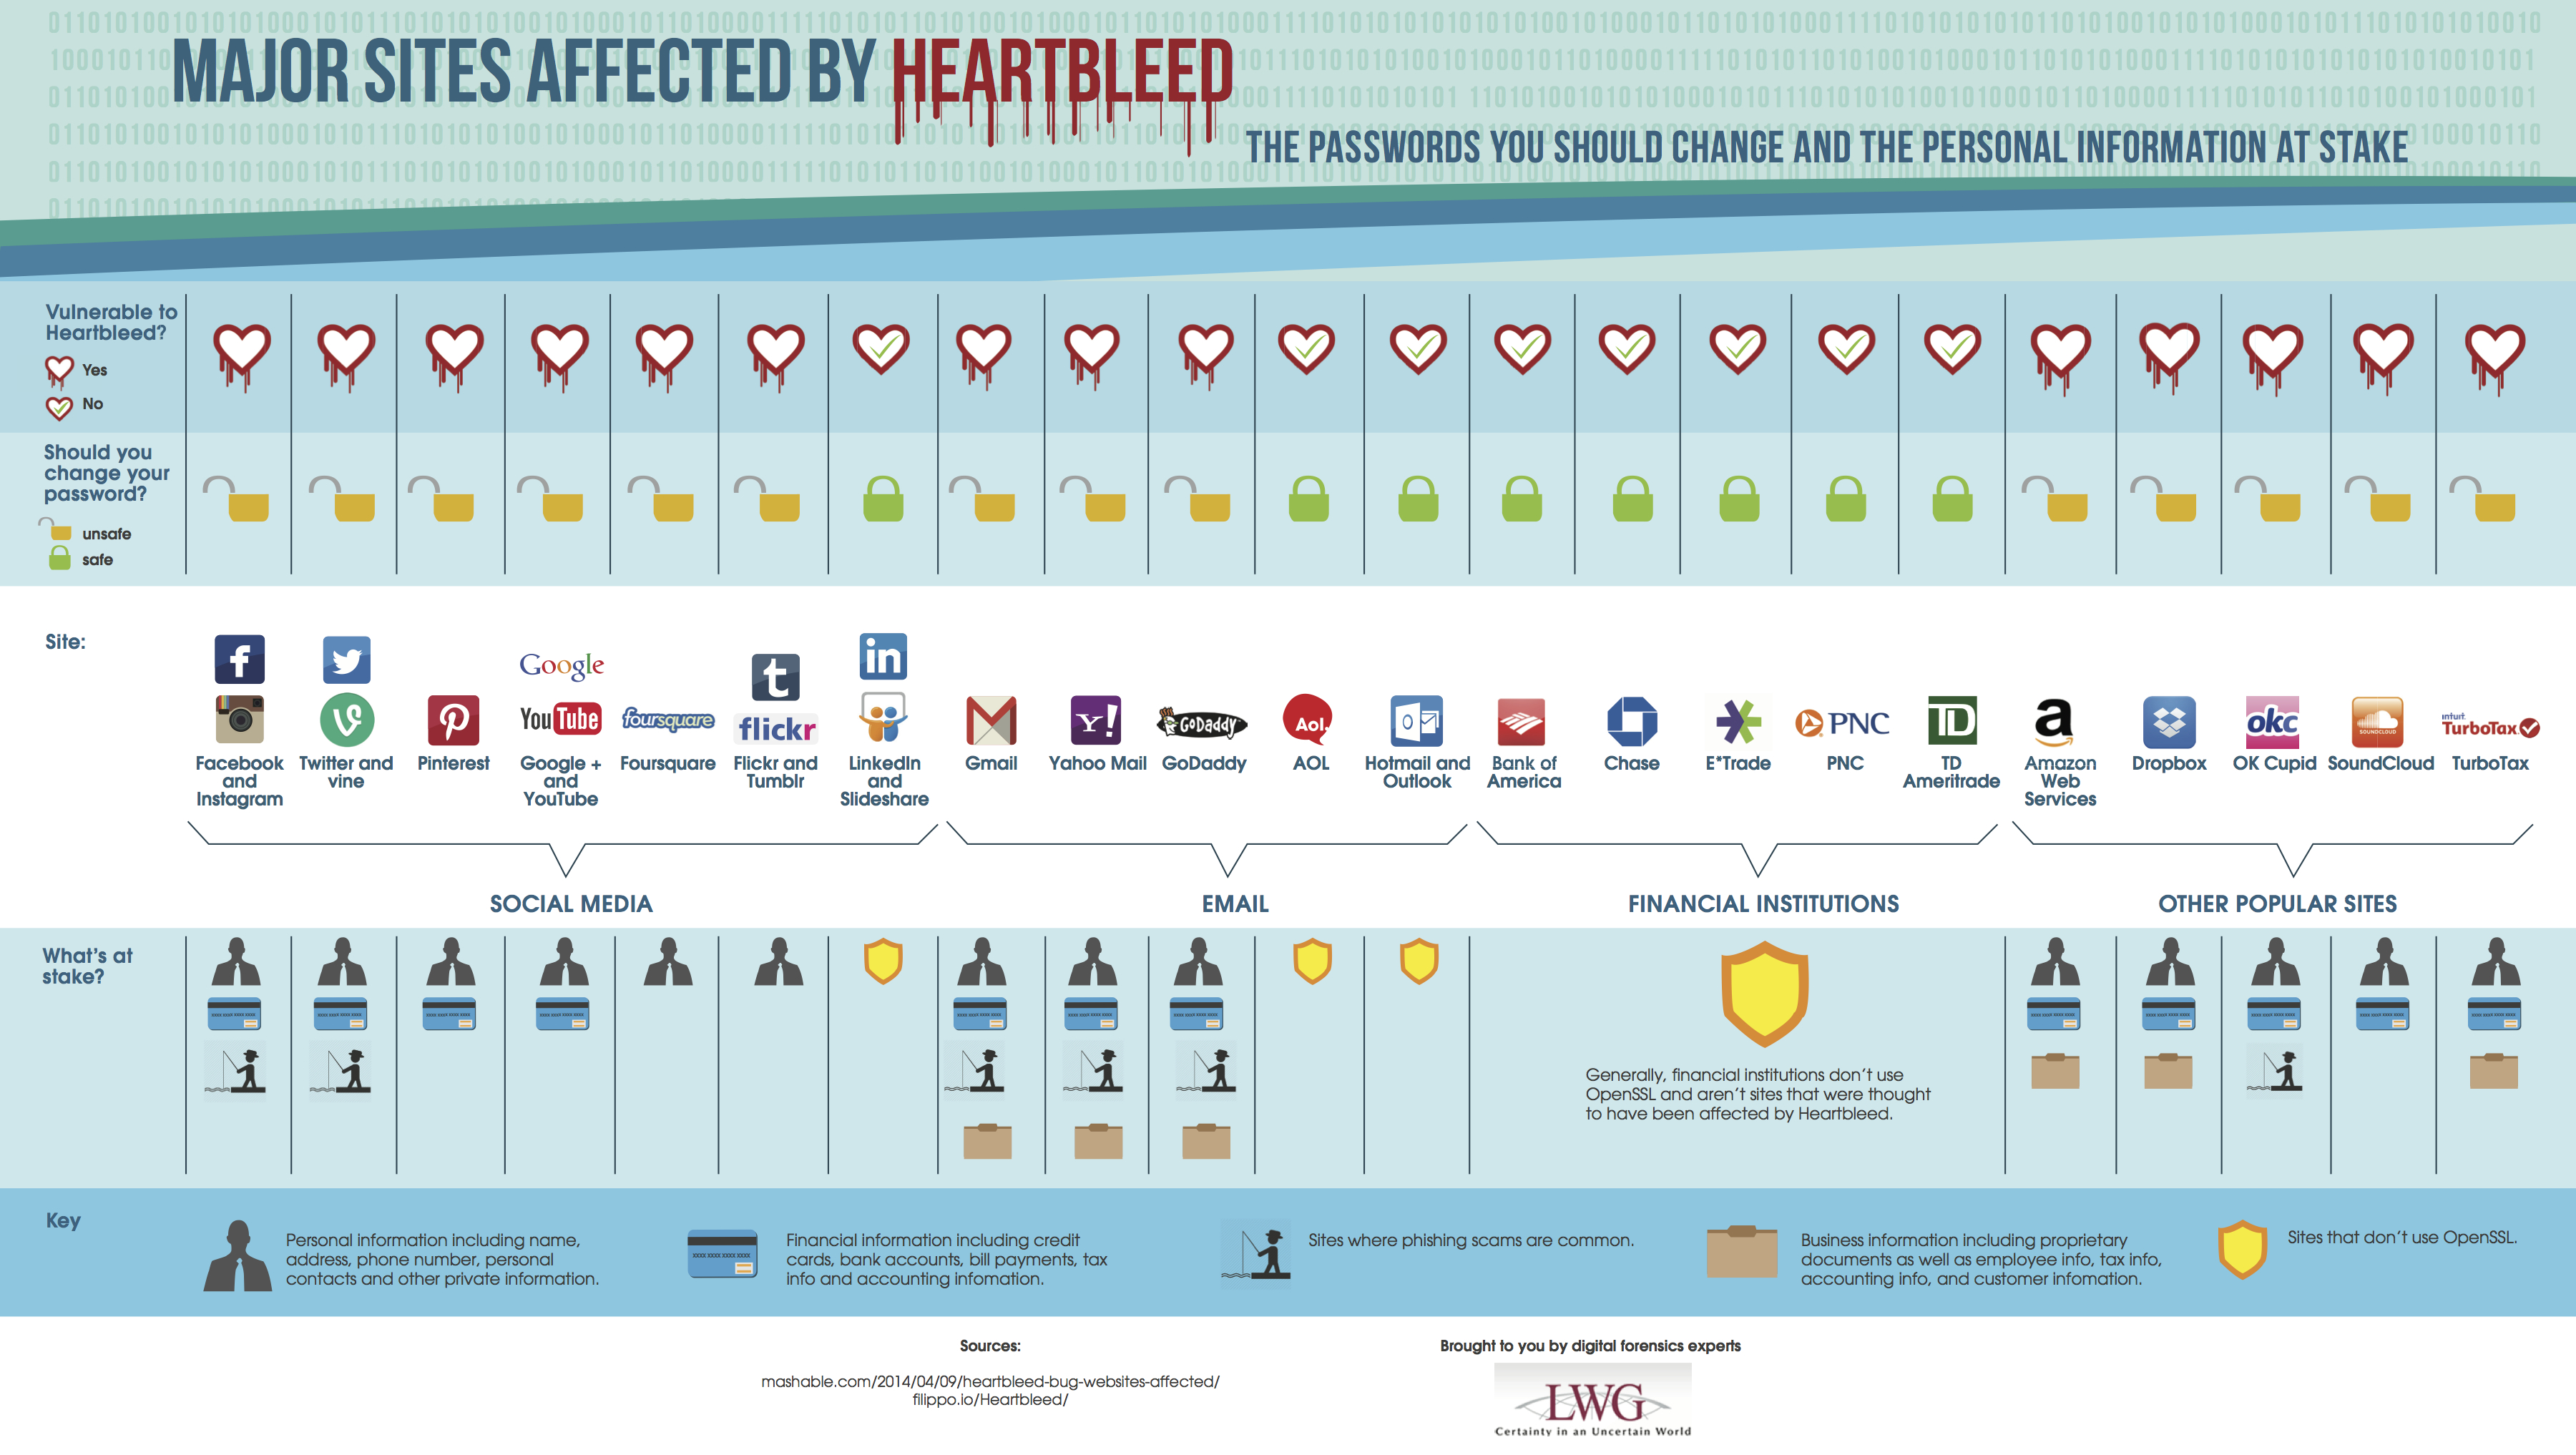 heartbleed-services-affected